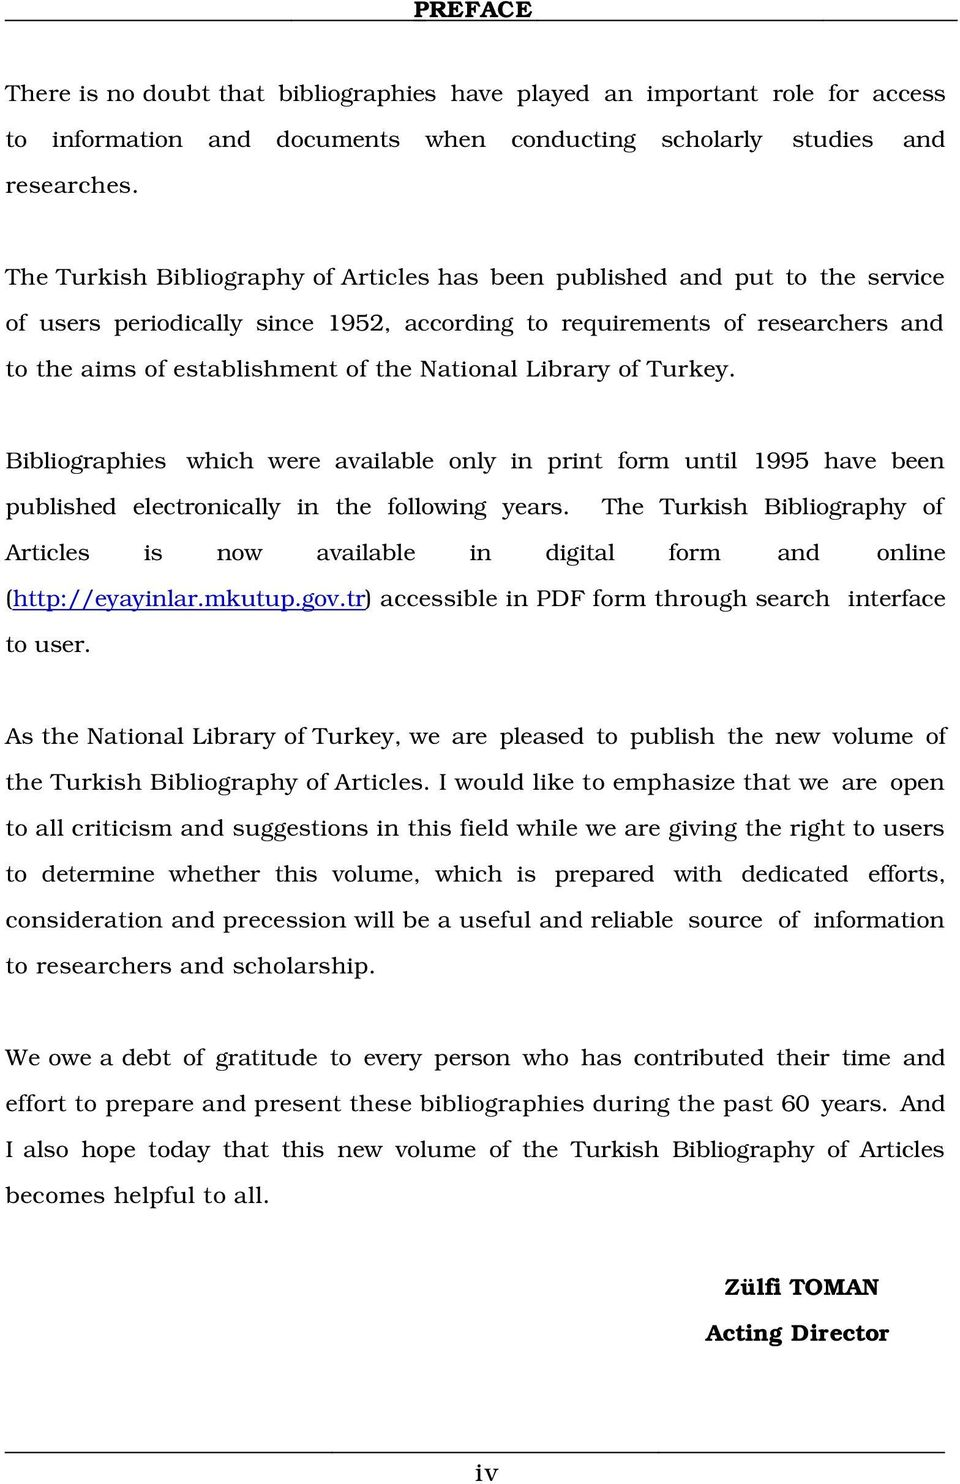 National Library of Turkey. Bibliographies which were available only in print form until 1995 have been published electronically in the following years.